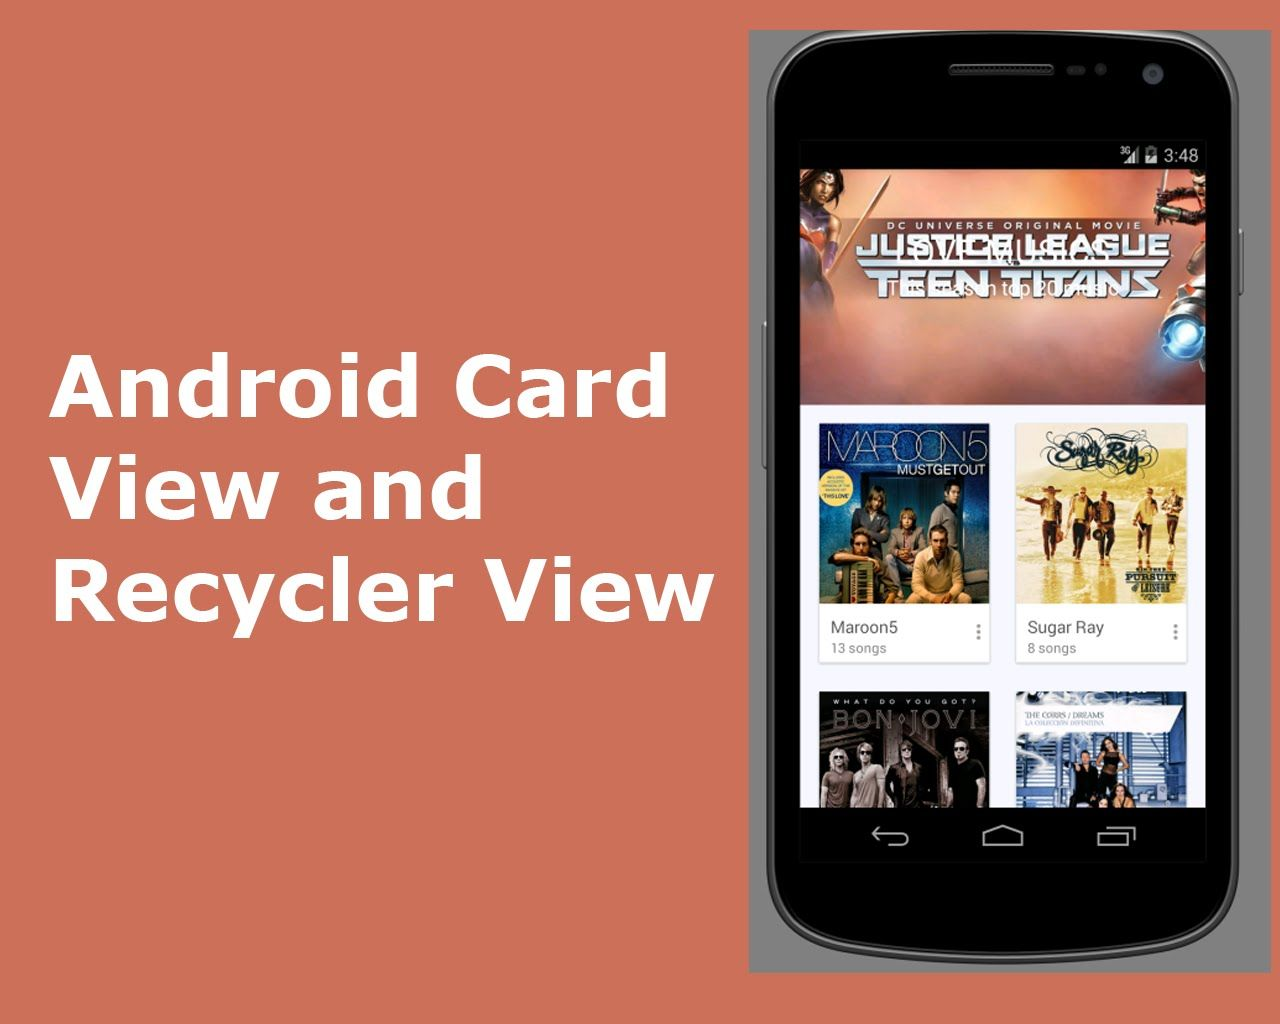 Android Card View and Recycler View | Delaroy Studios